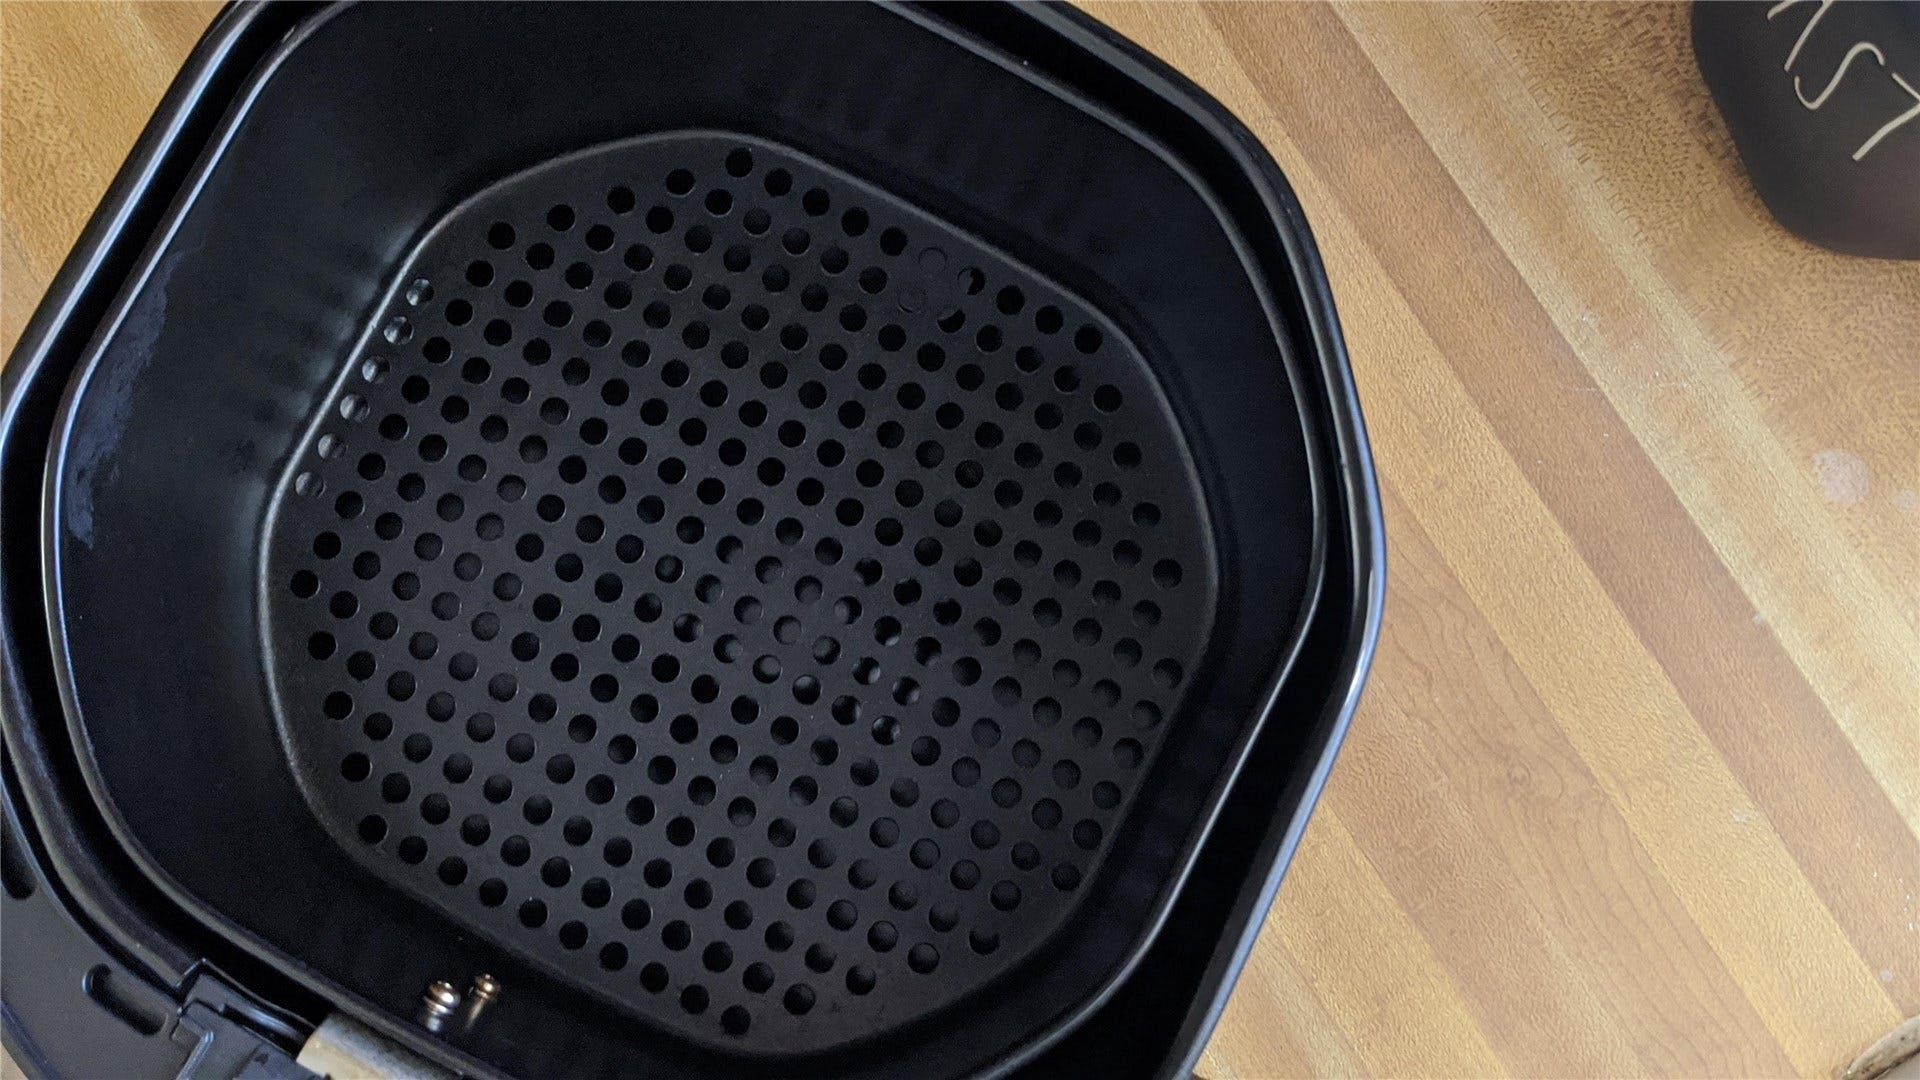 The Bagotte 3.7's basket and tray